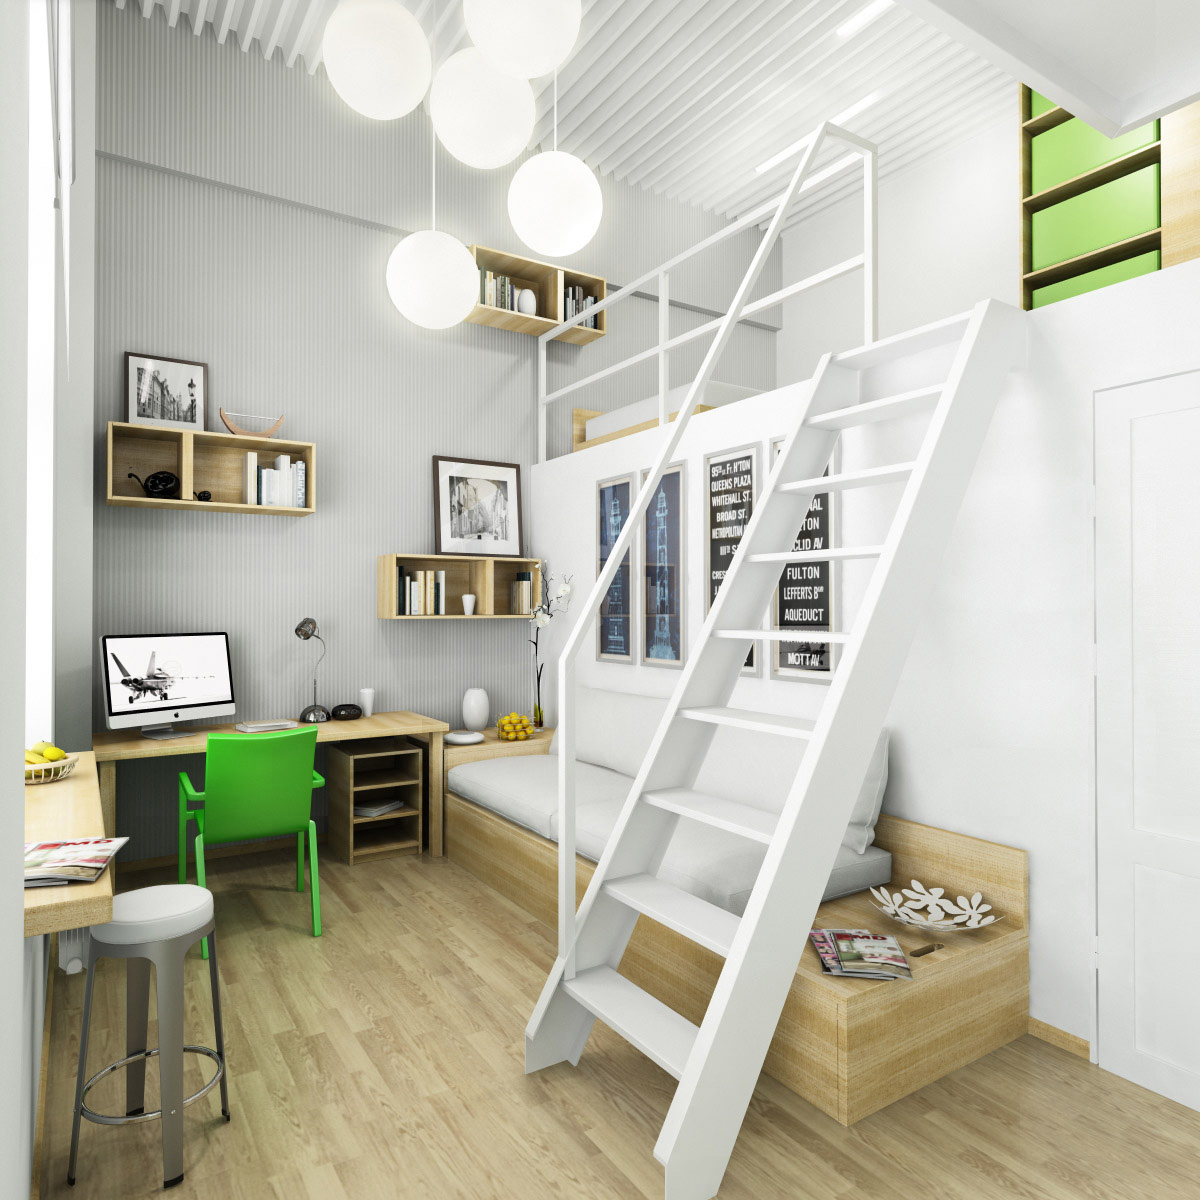 Teen workspaces for Sustainable interior design products